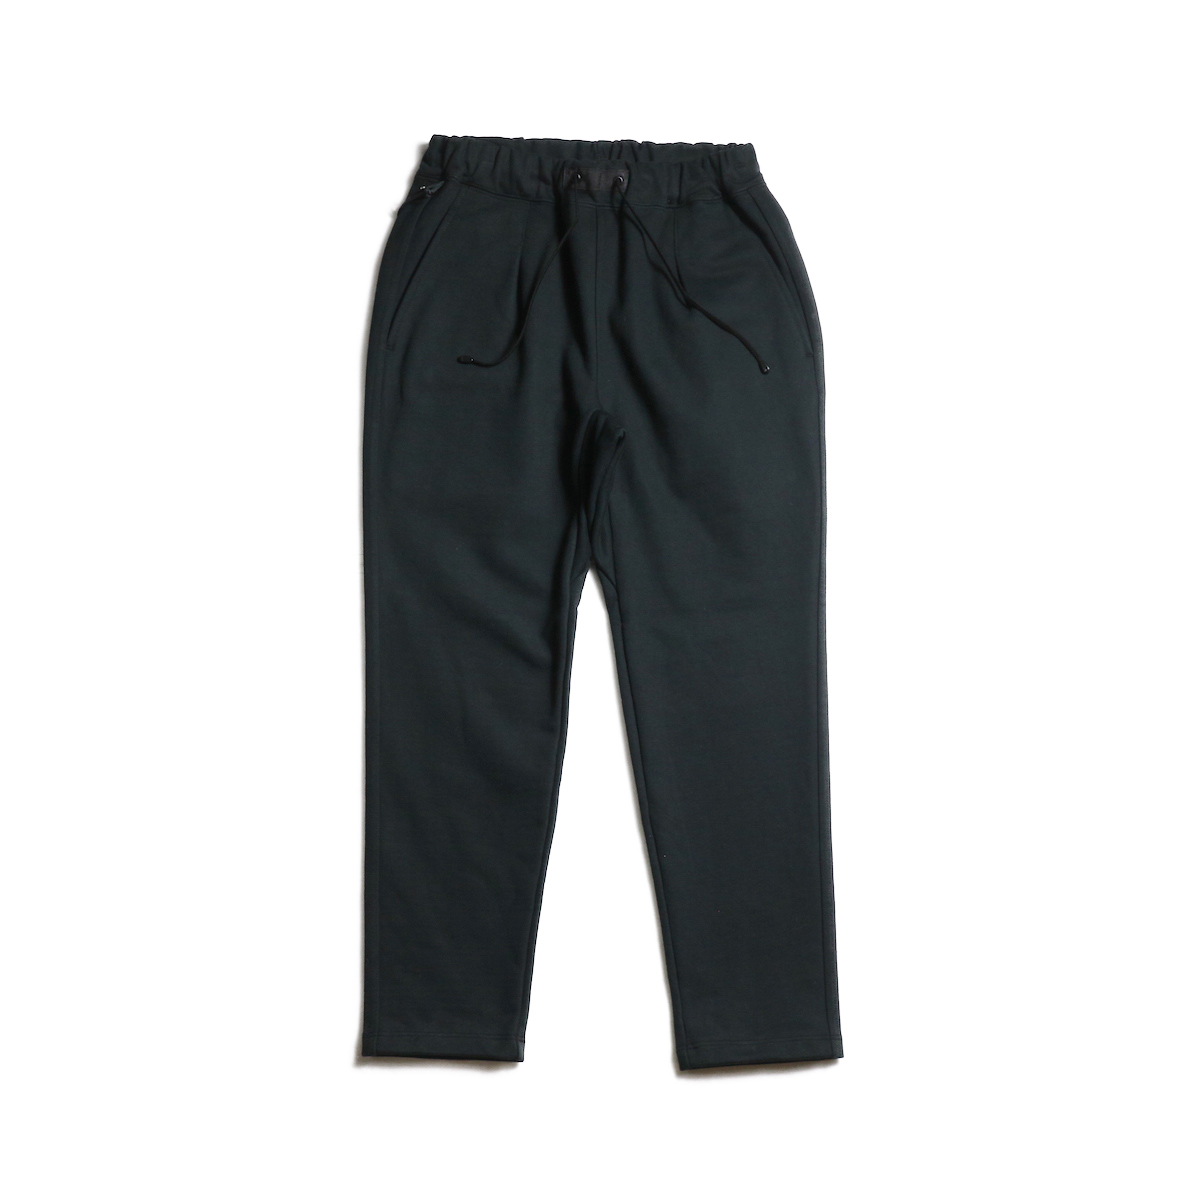 CURLY / BROMLEY EZ TROUSERS (Black)